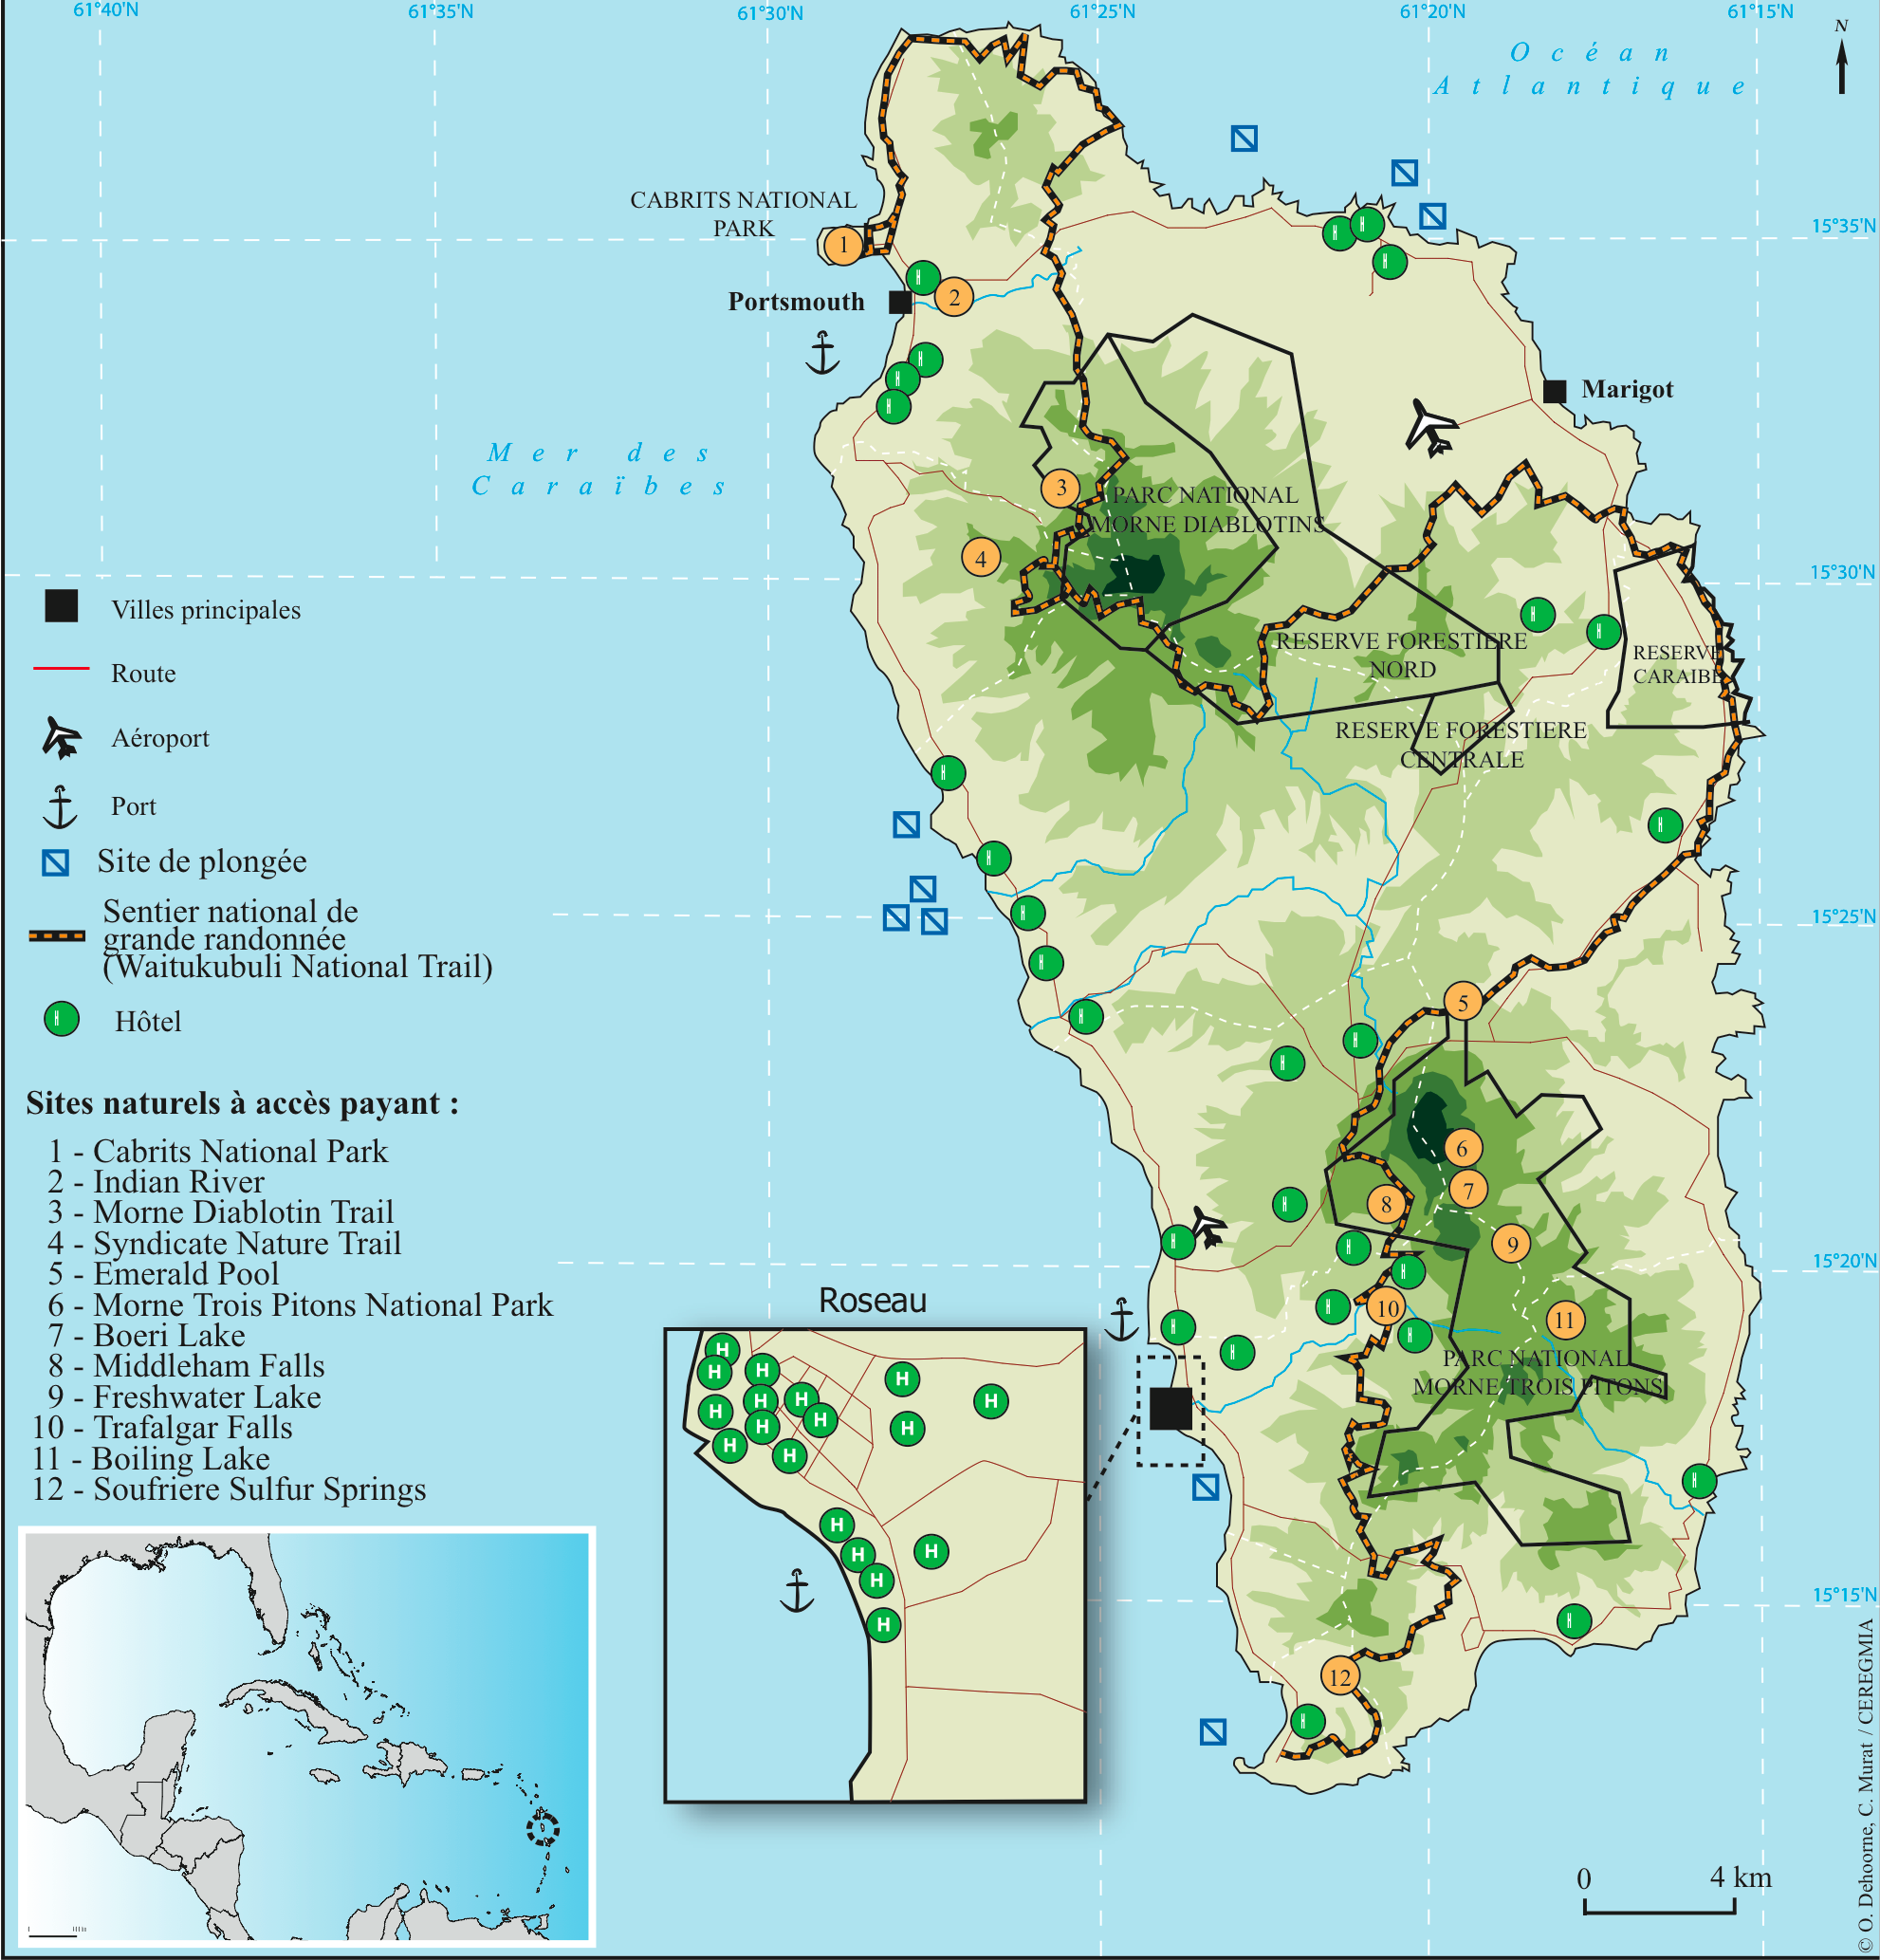 Ecotourism And Natural Resources In Dominica Comanagement As An - Dominica map hd pdf